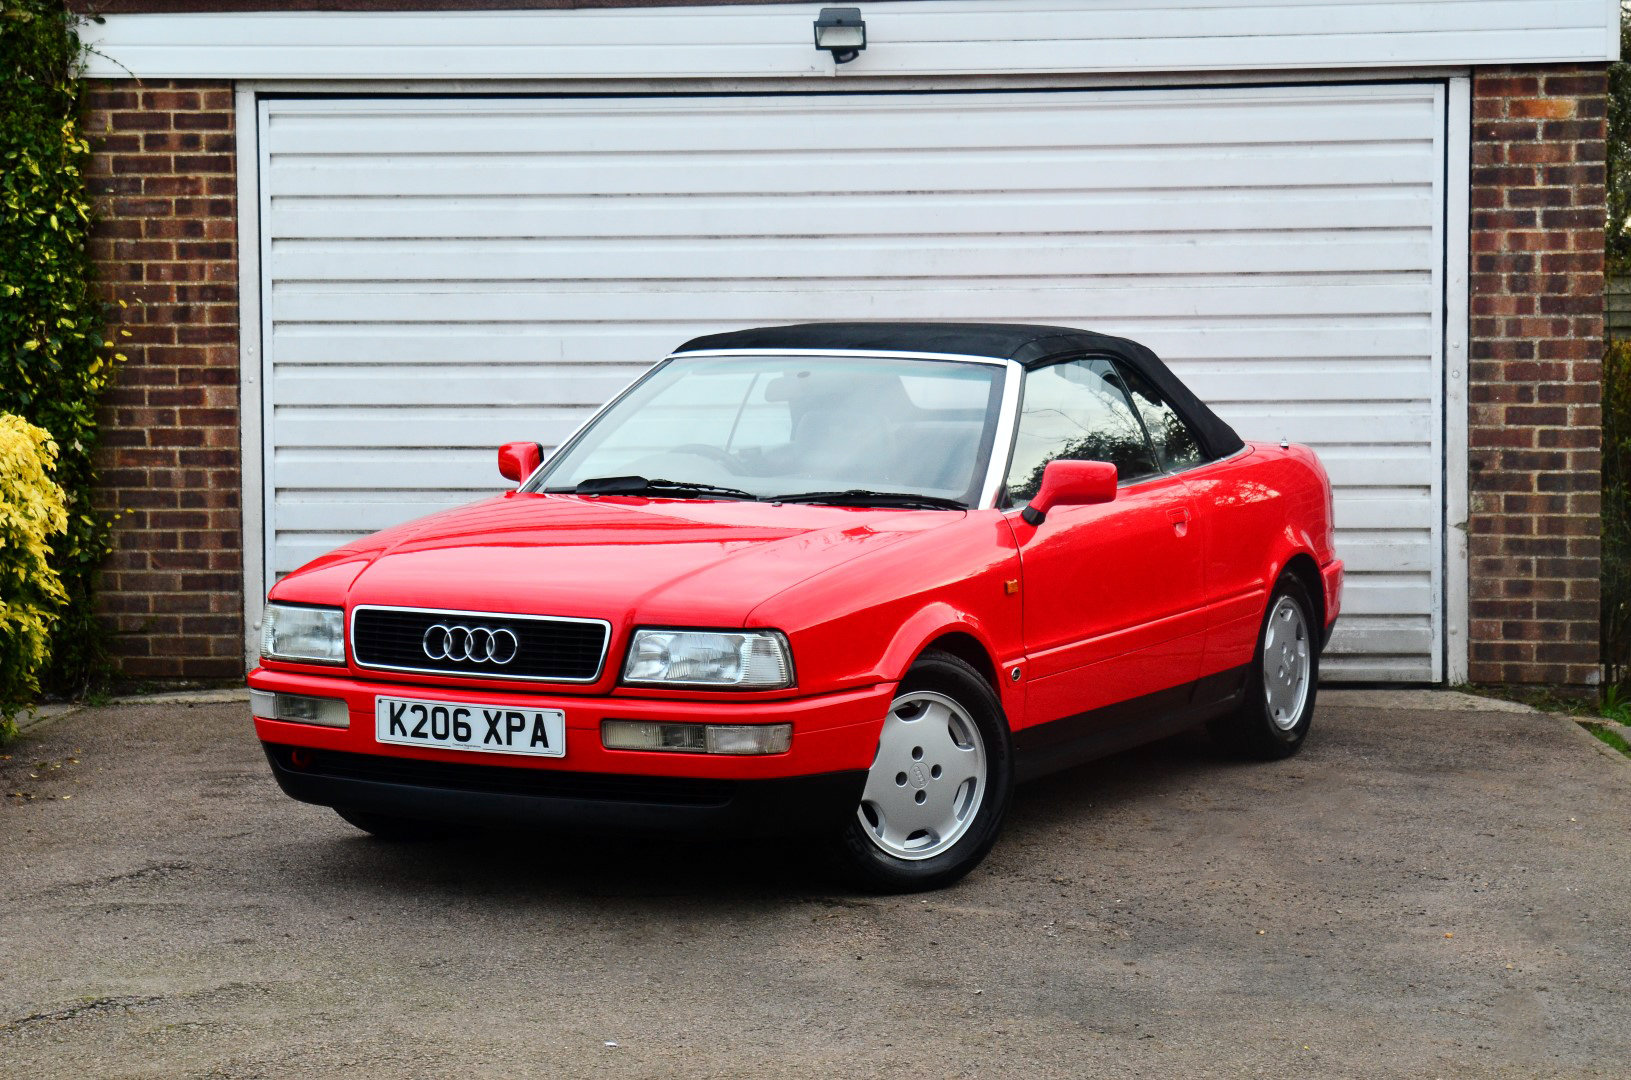 1993 Audi Cabriolet 2.3 Manual For Sale (picture 3 of 6)